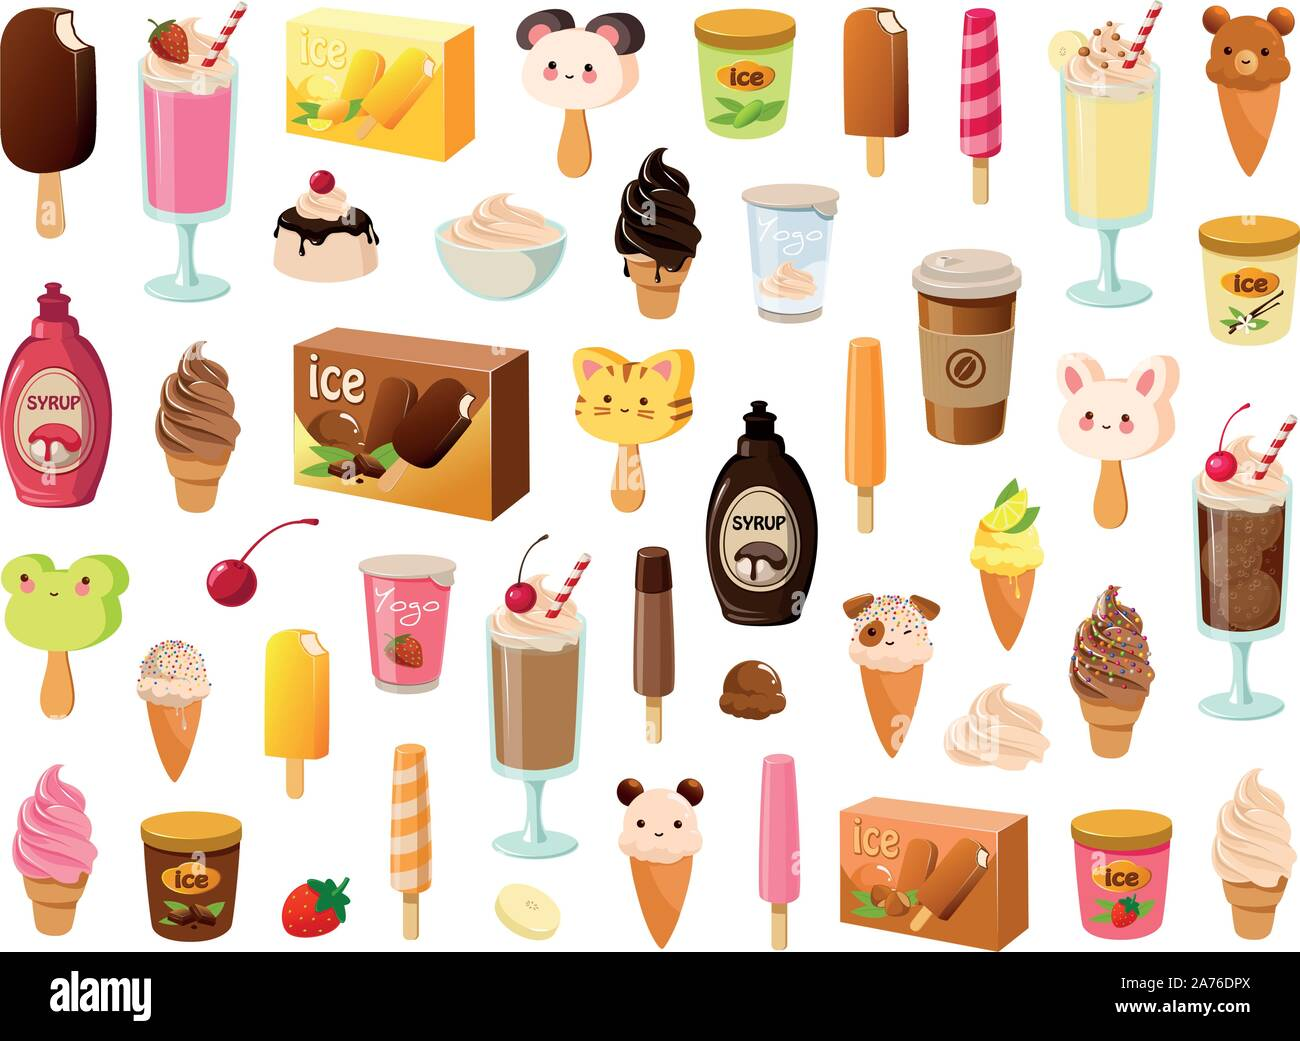 Vector illustration of various kinds of ice cream, sorbet and frozen dairy products Stock Vector